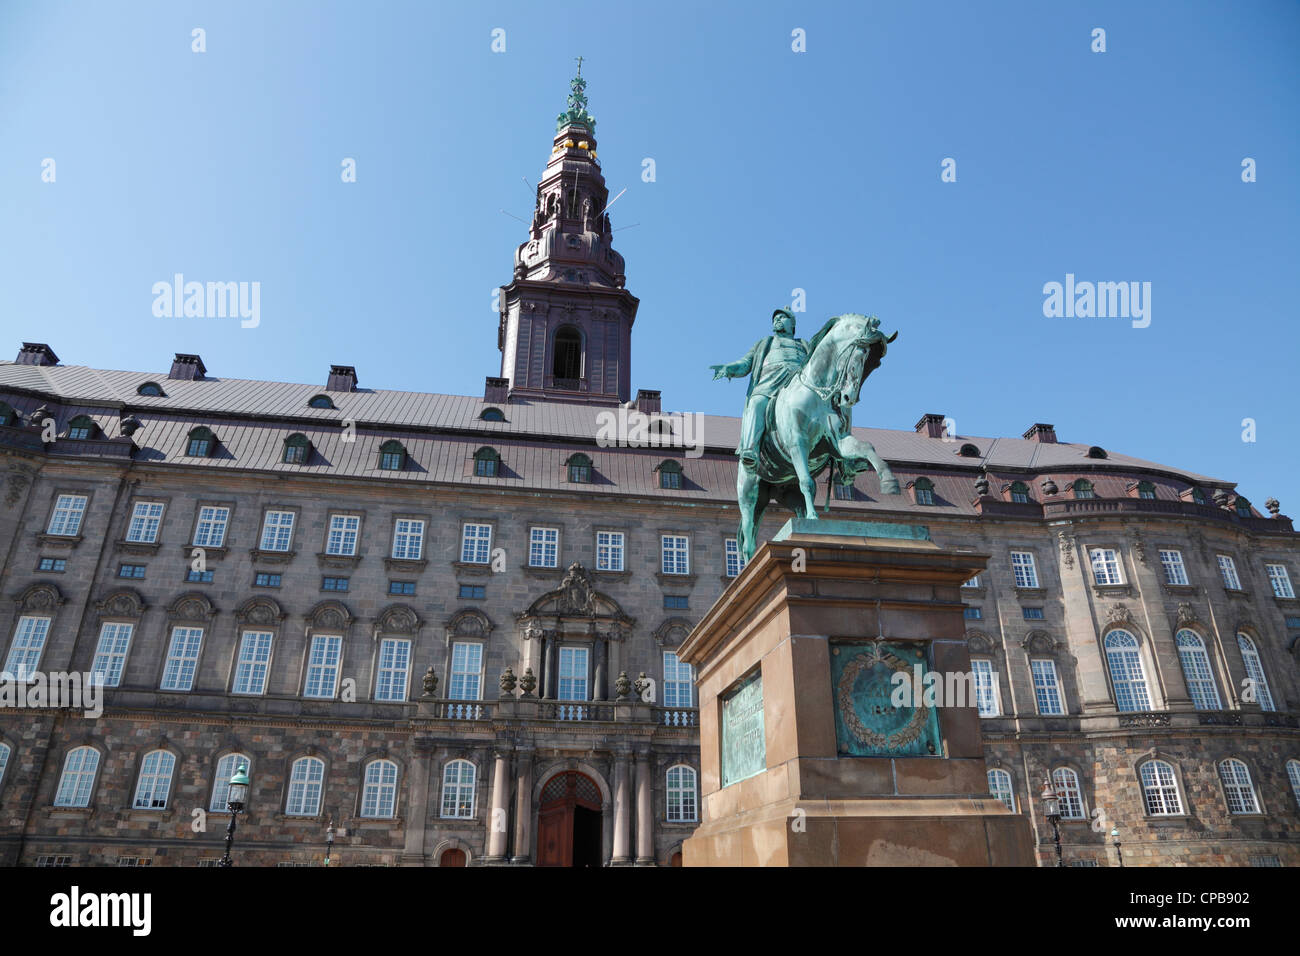 The castle and square of Christiansborg Castle with the equestrian statue. The Danish Parliament building in Copenhagen, - Stock Image